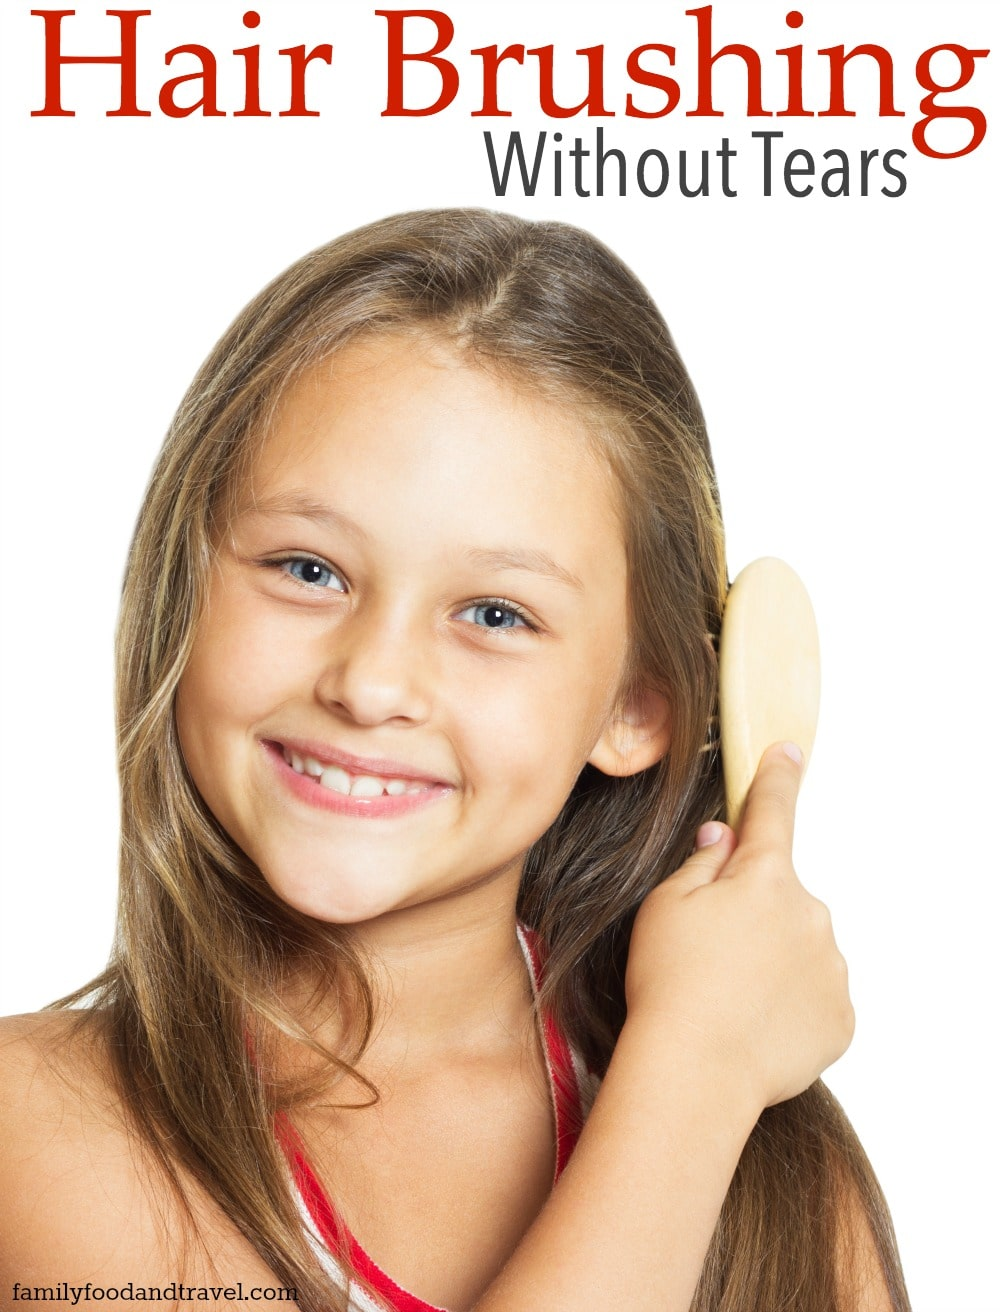 Hair Brushing Without Tears